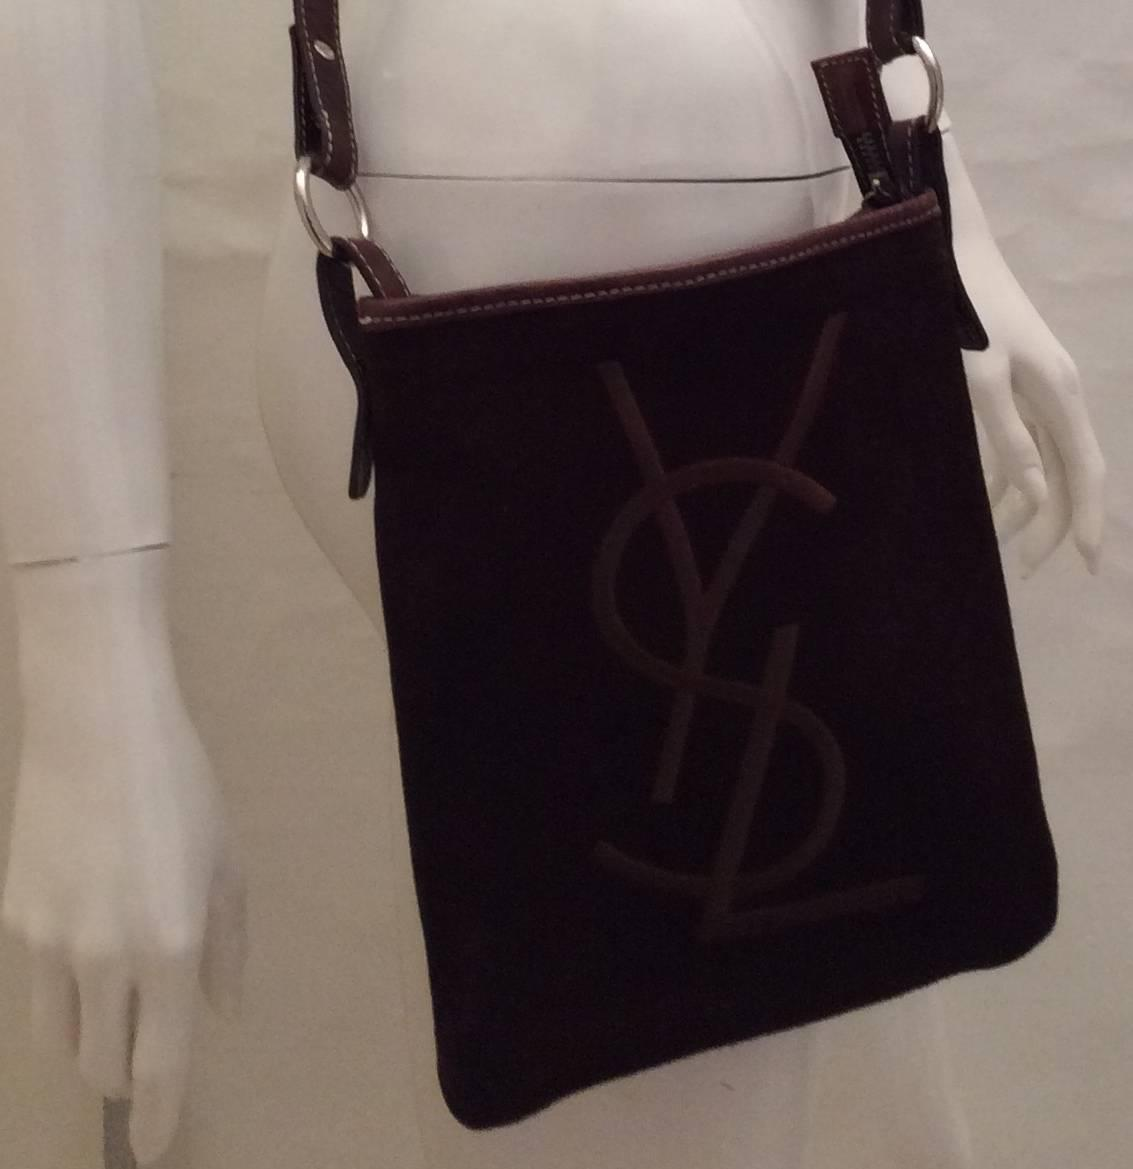 yves st laurent mens wallet - Yves Saint Laurent (YSL) Brown Suede Crossbody Bag For Sale at 1stdibs